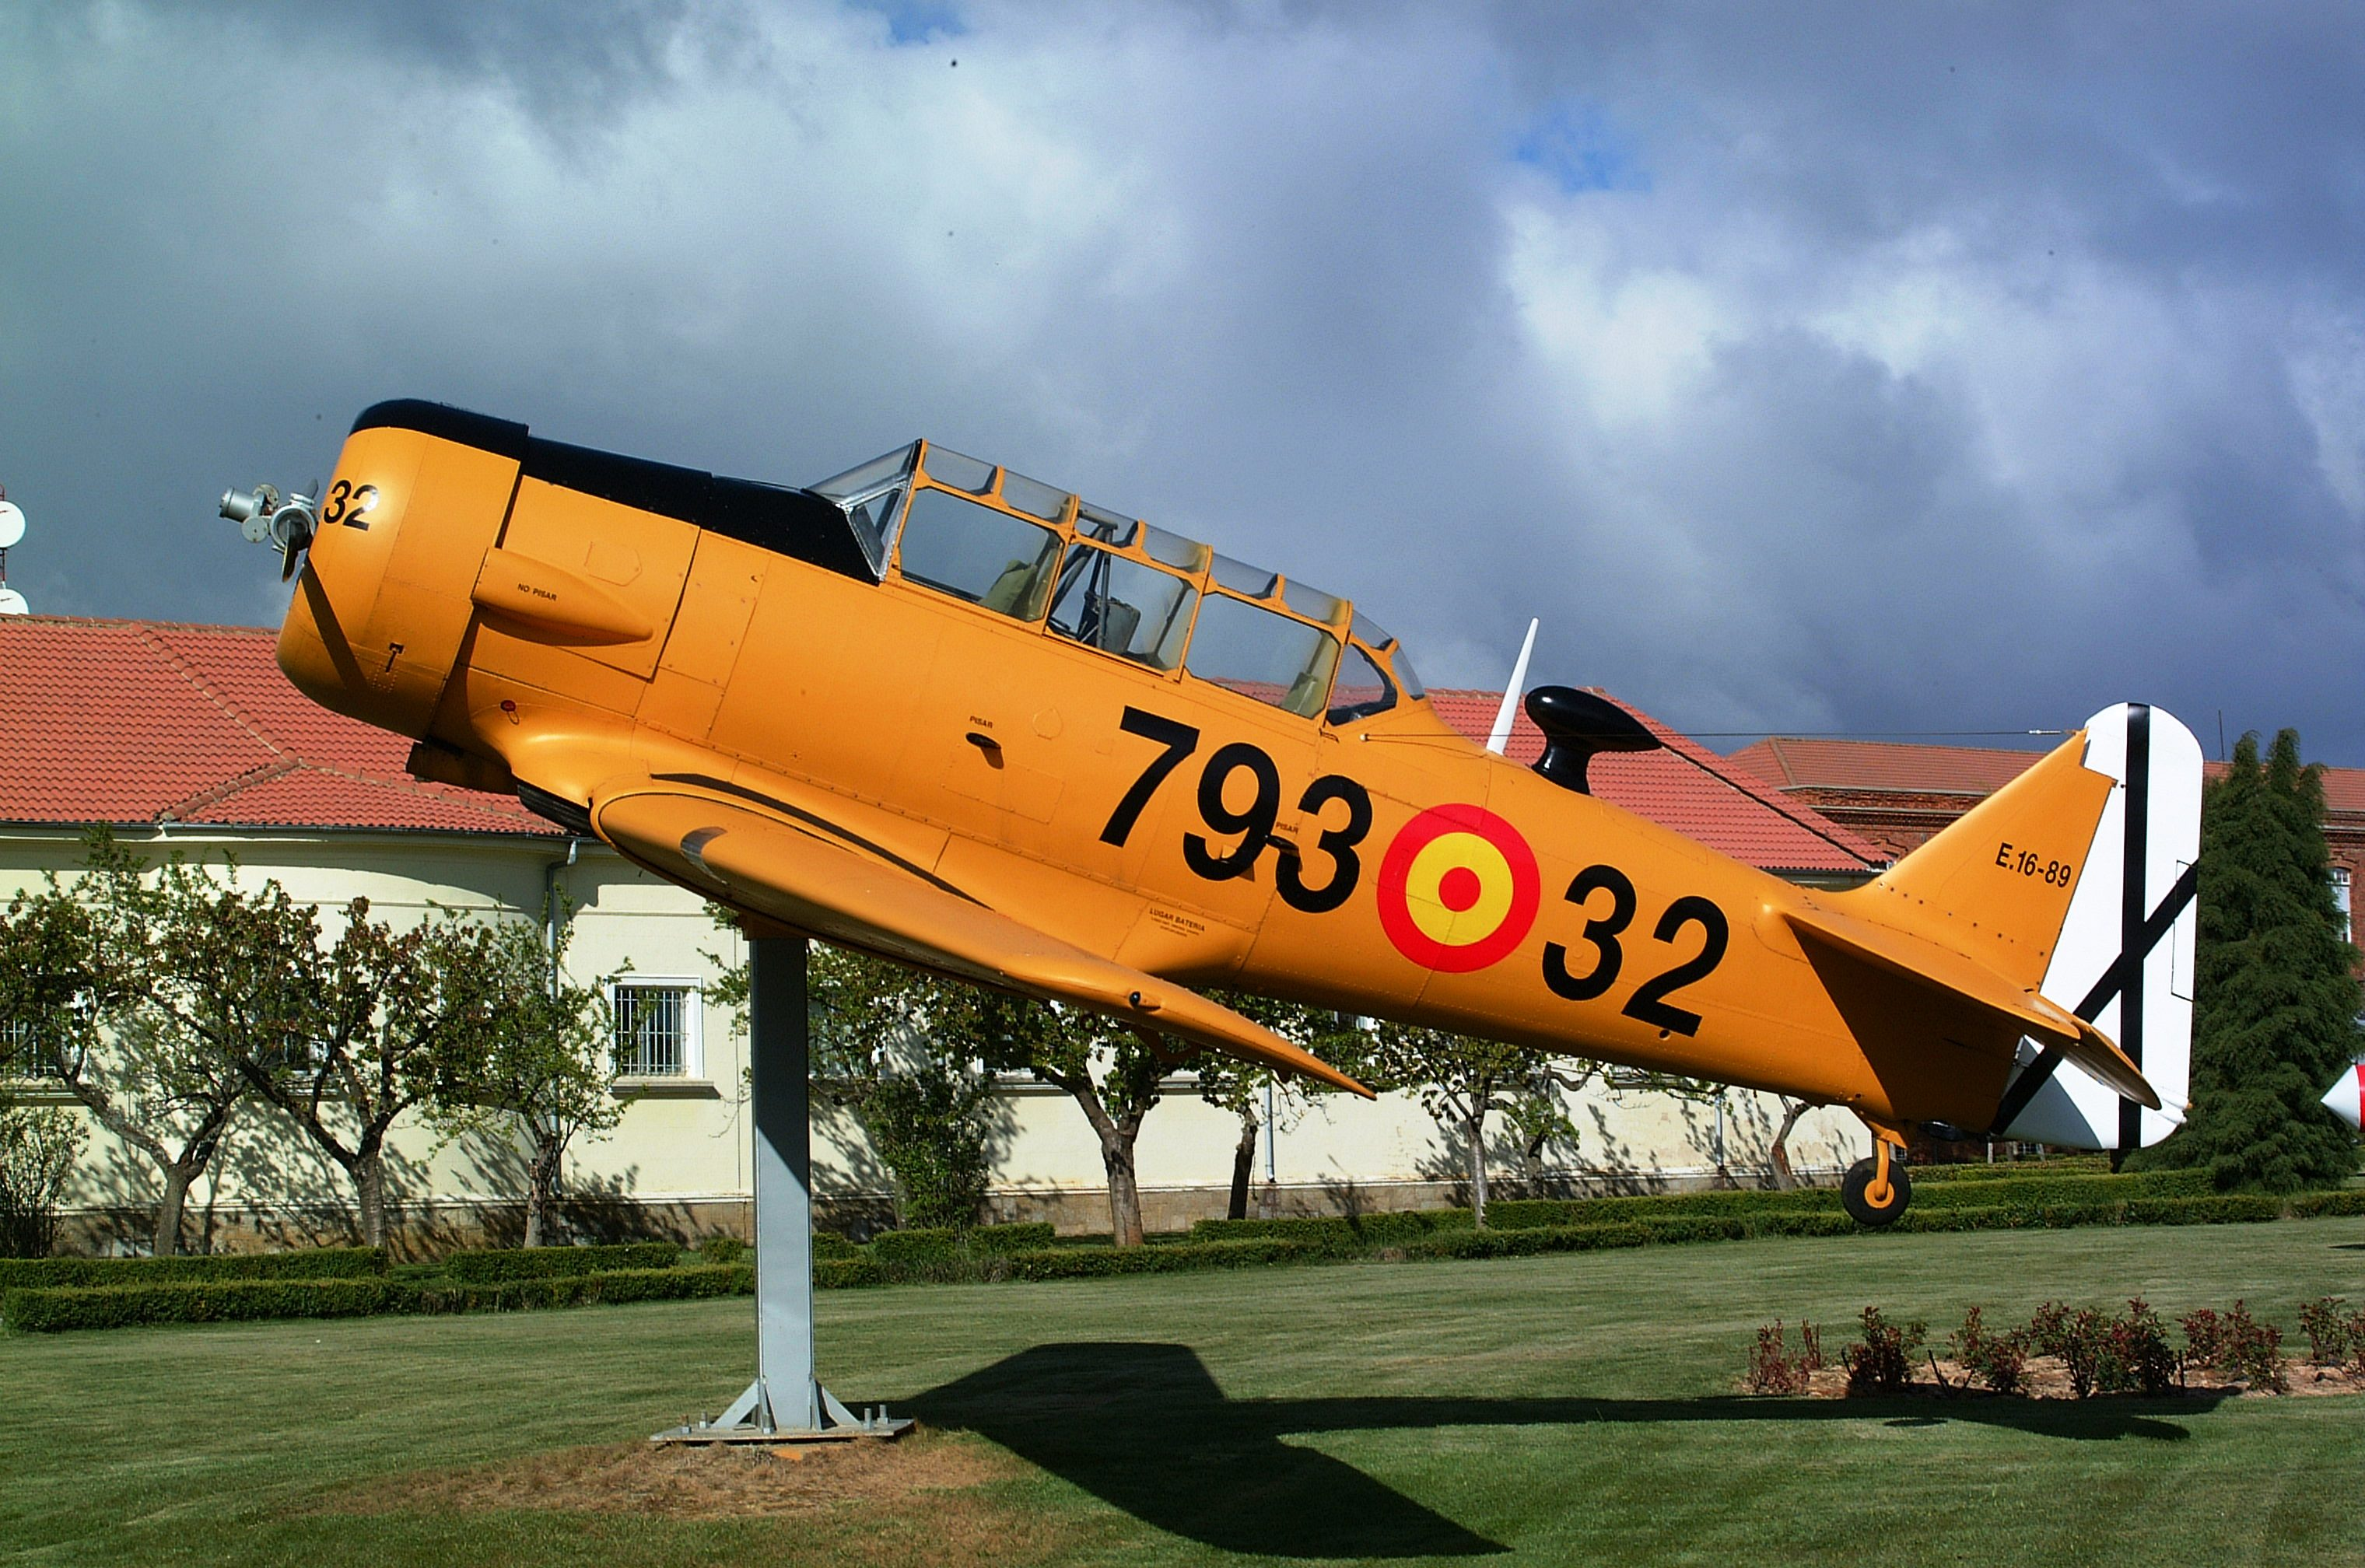 File:Spanish Air Force León NCOs academy E.16-89 793-32